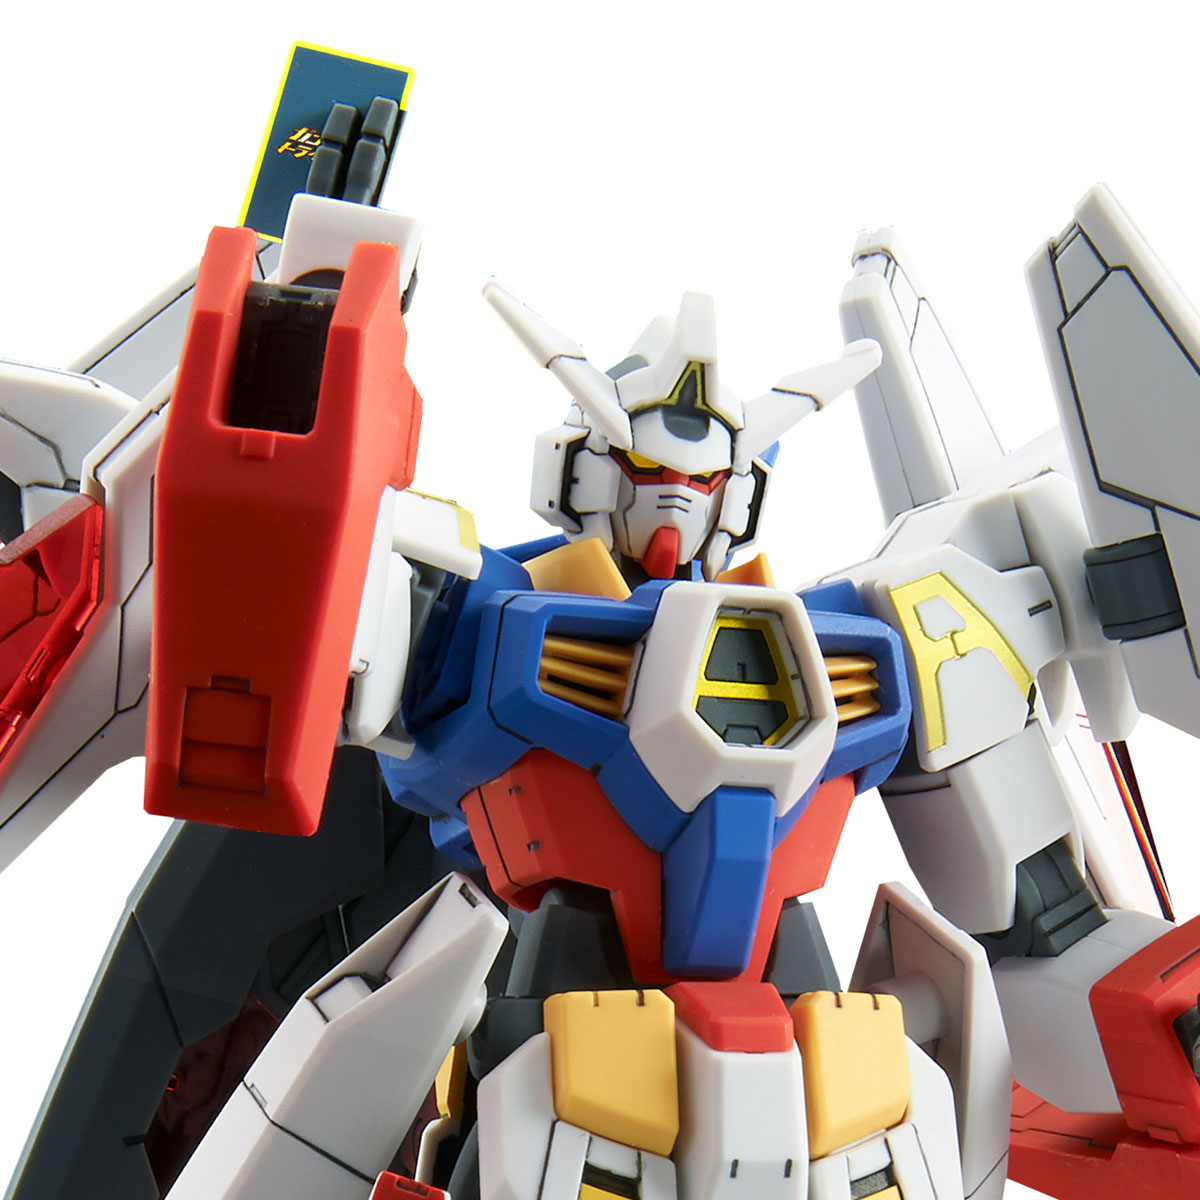 HG 1/144 TRY AGE GUNDAM [Dec 2020 Delivery]